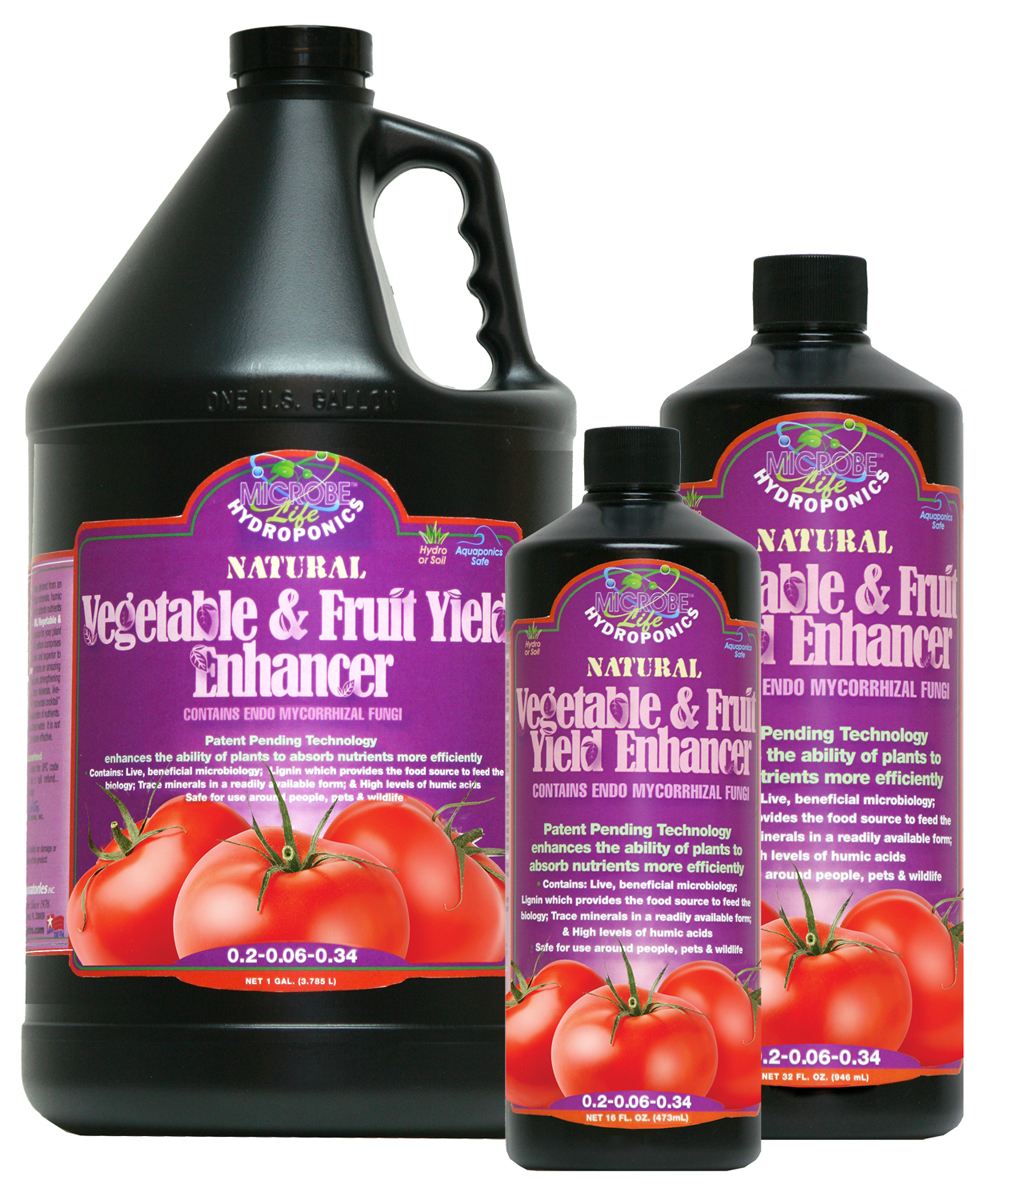 Microbe Life Vegetable & Fruit Yield Enhancer 2.5 Gallon